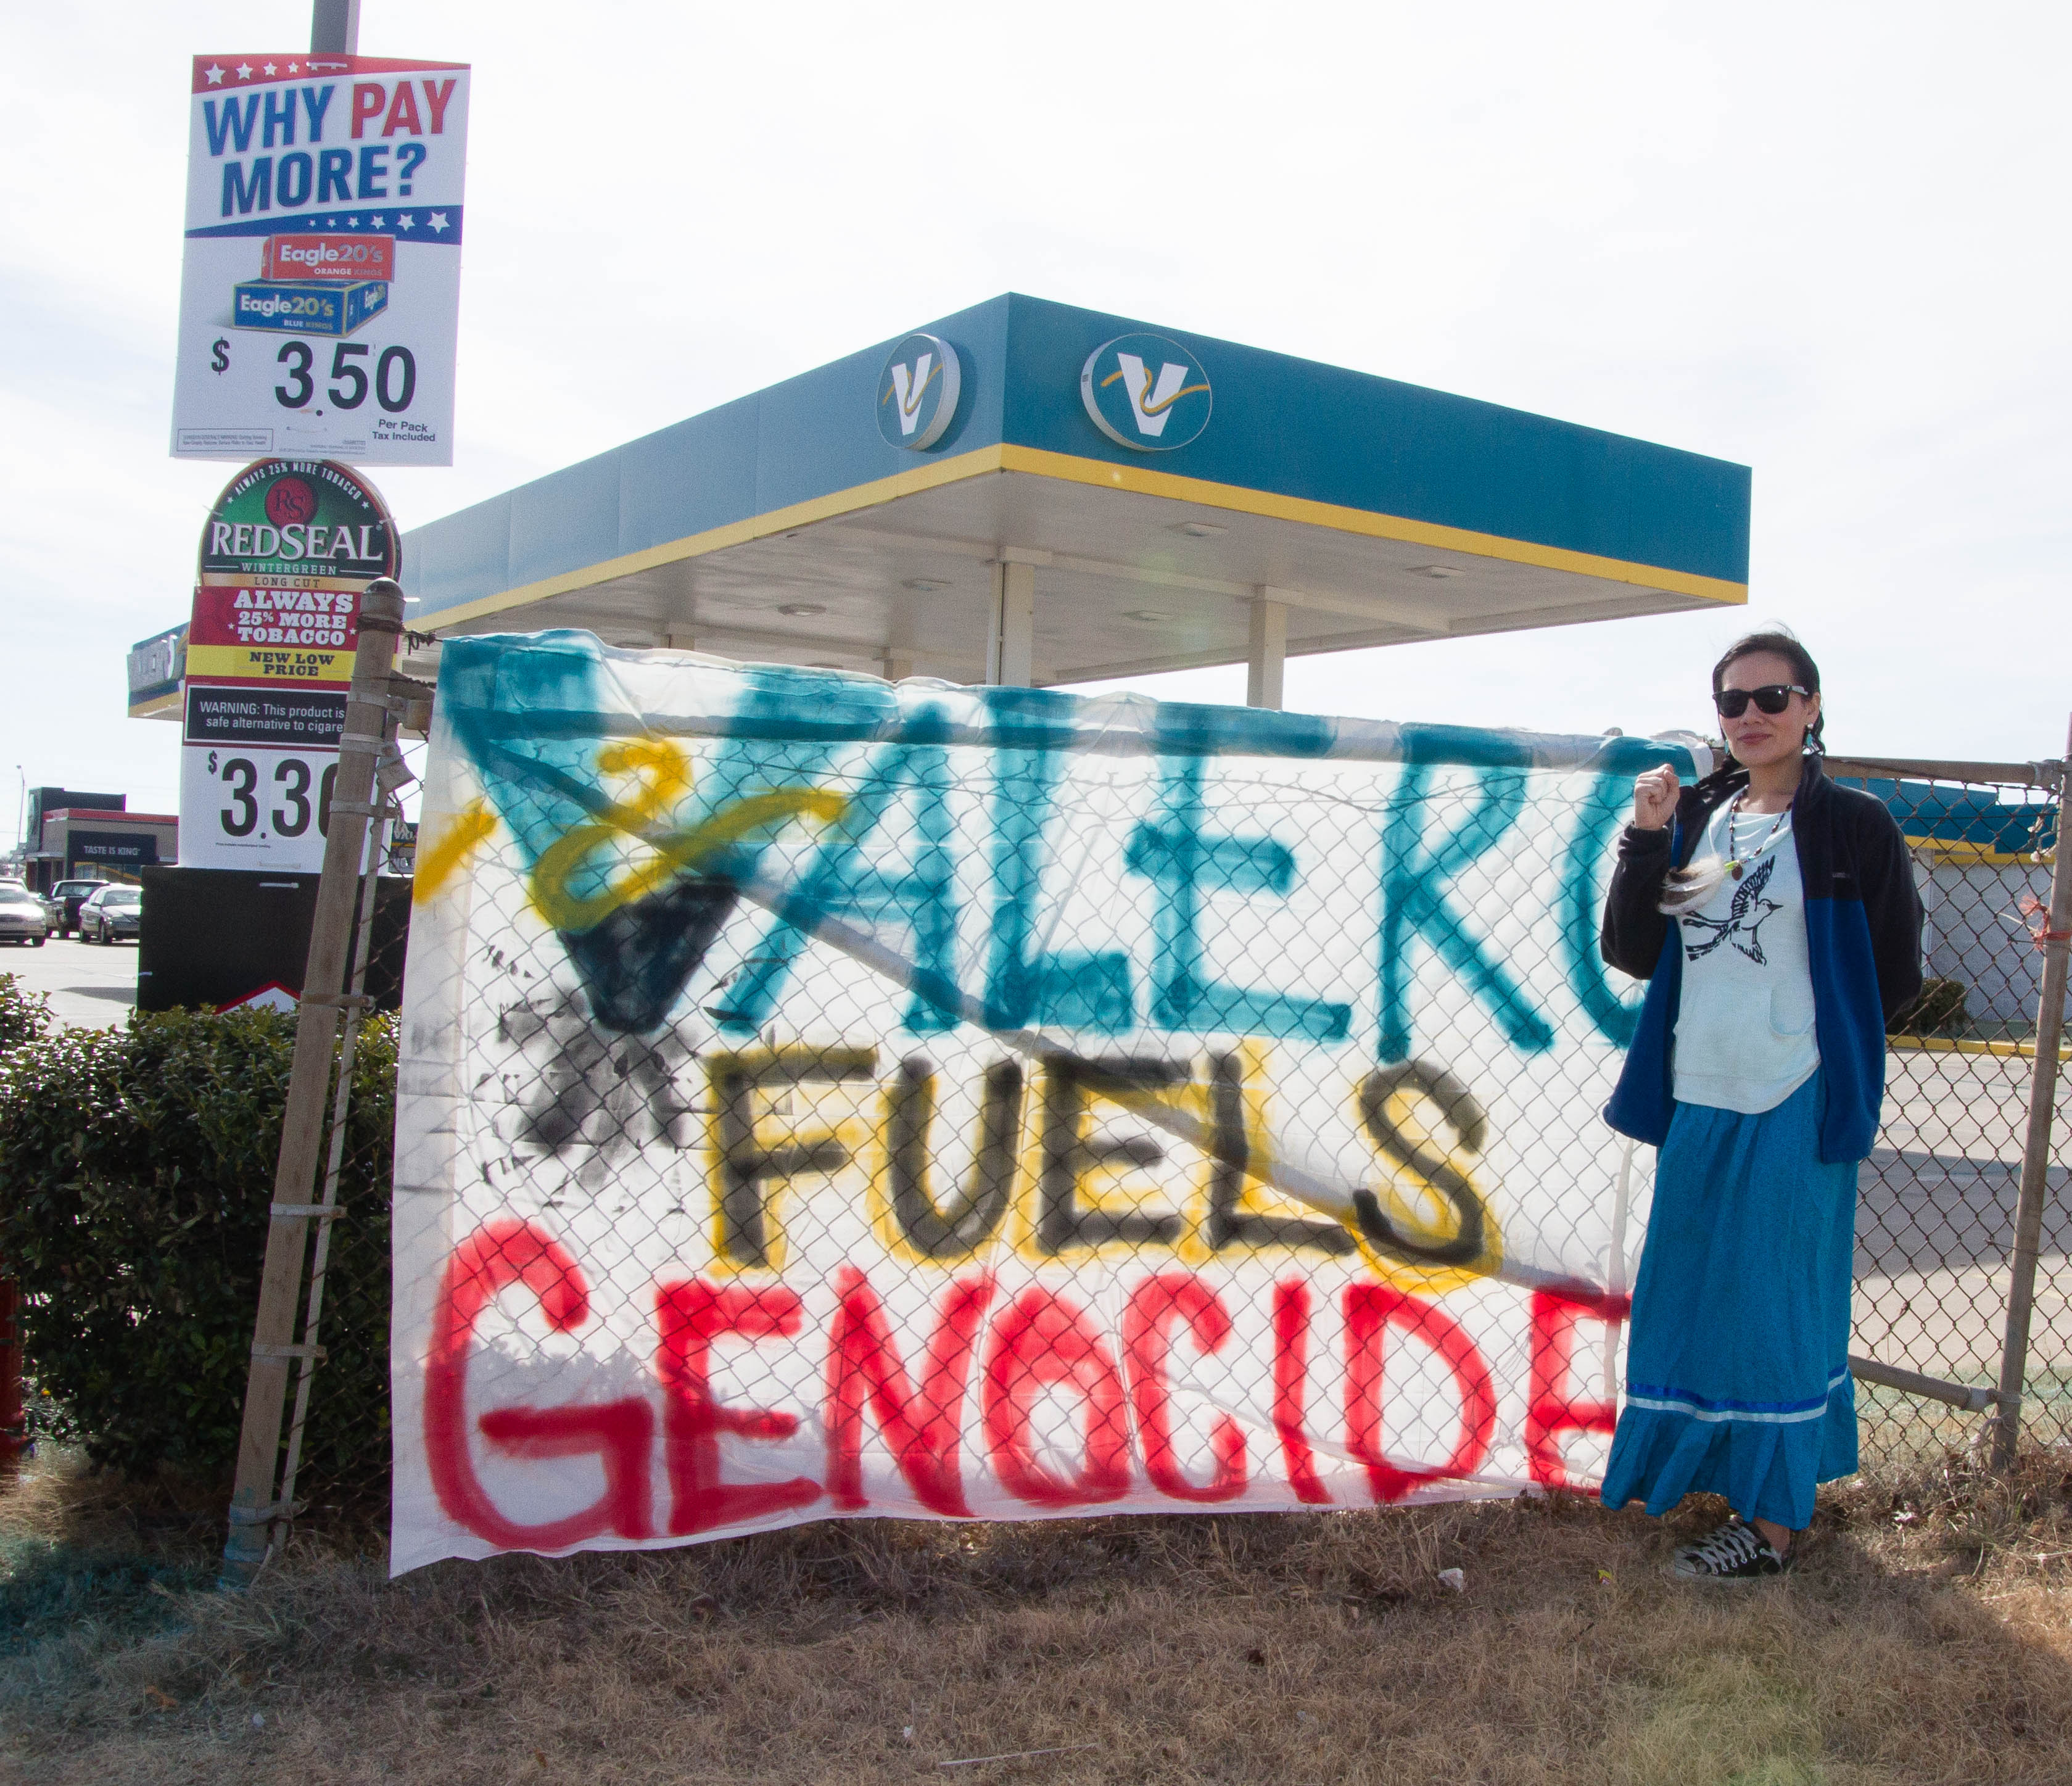 Demonstrators rally against Diamond Pipeline at gas station near campus